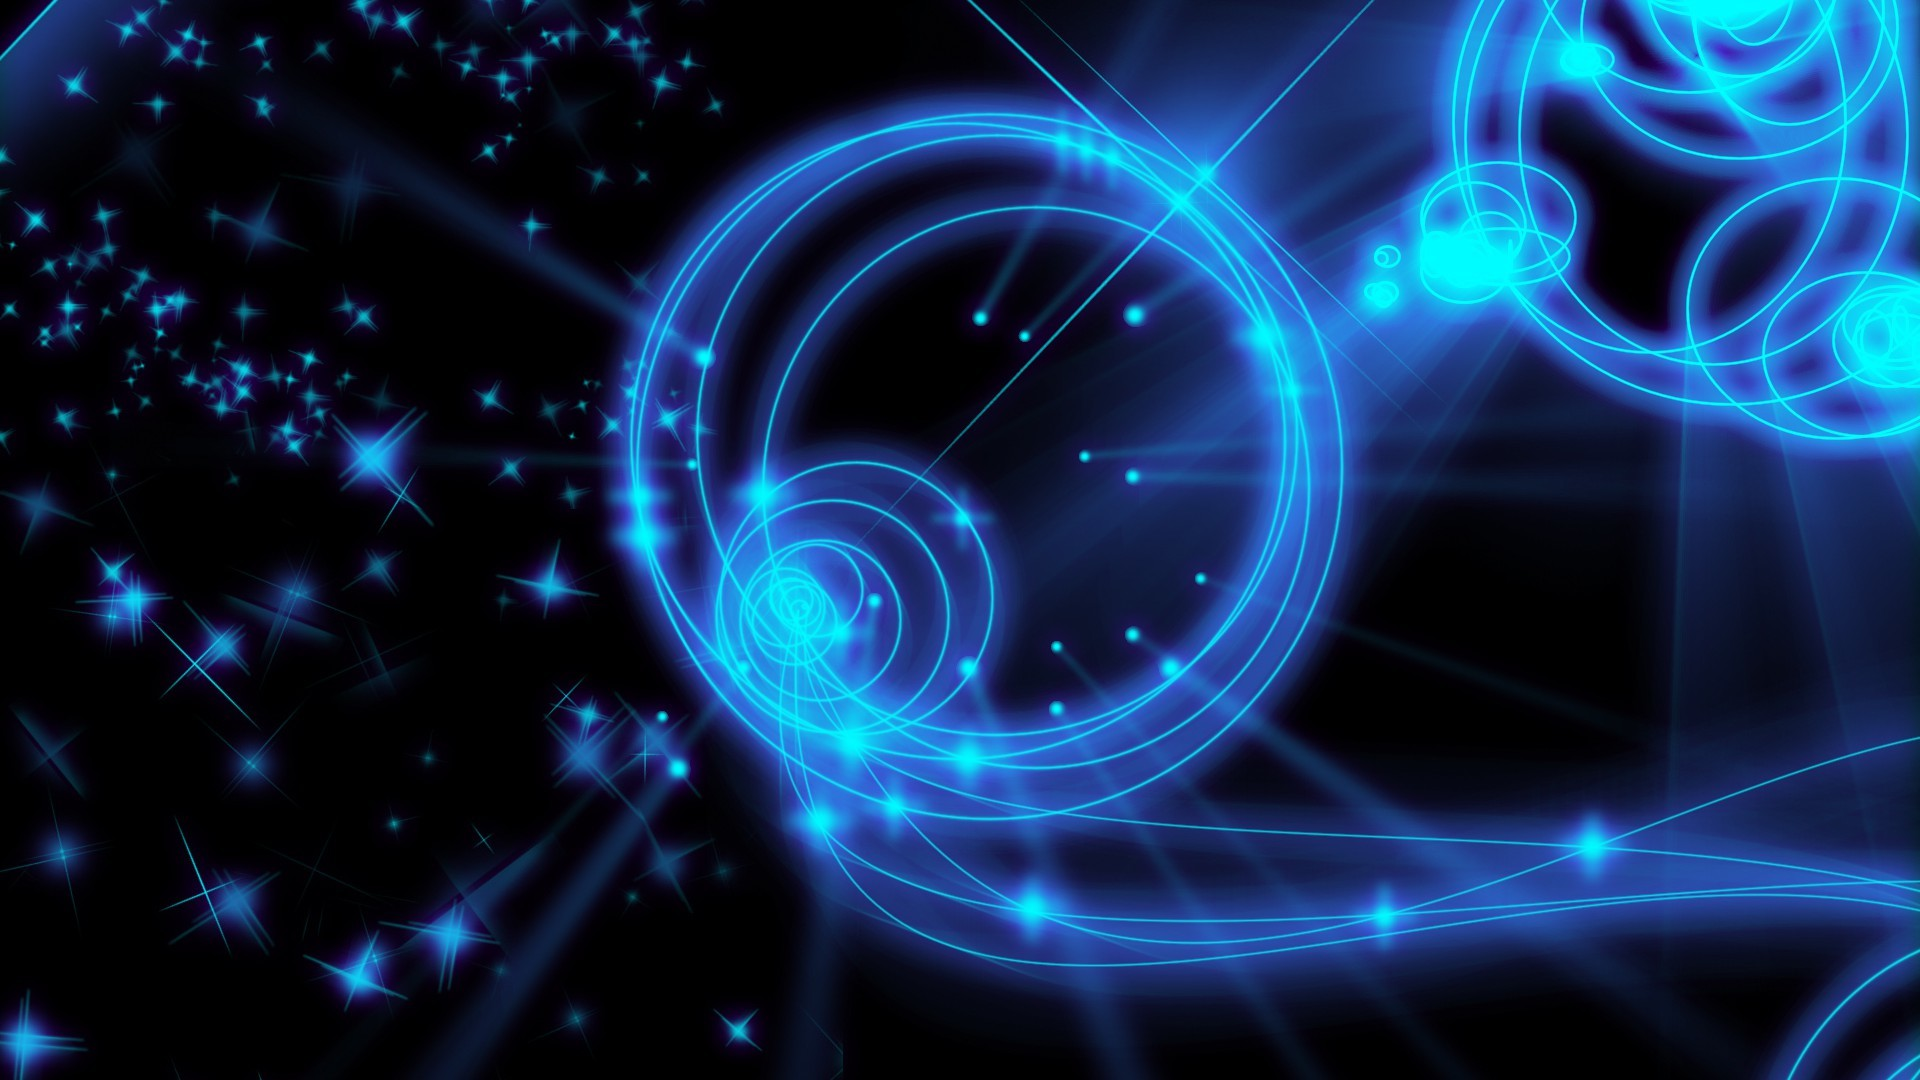 blue-neon-lights-abstract-black-blue-circle-cool-